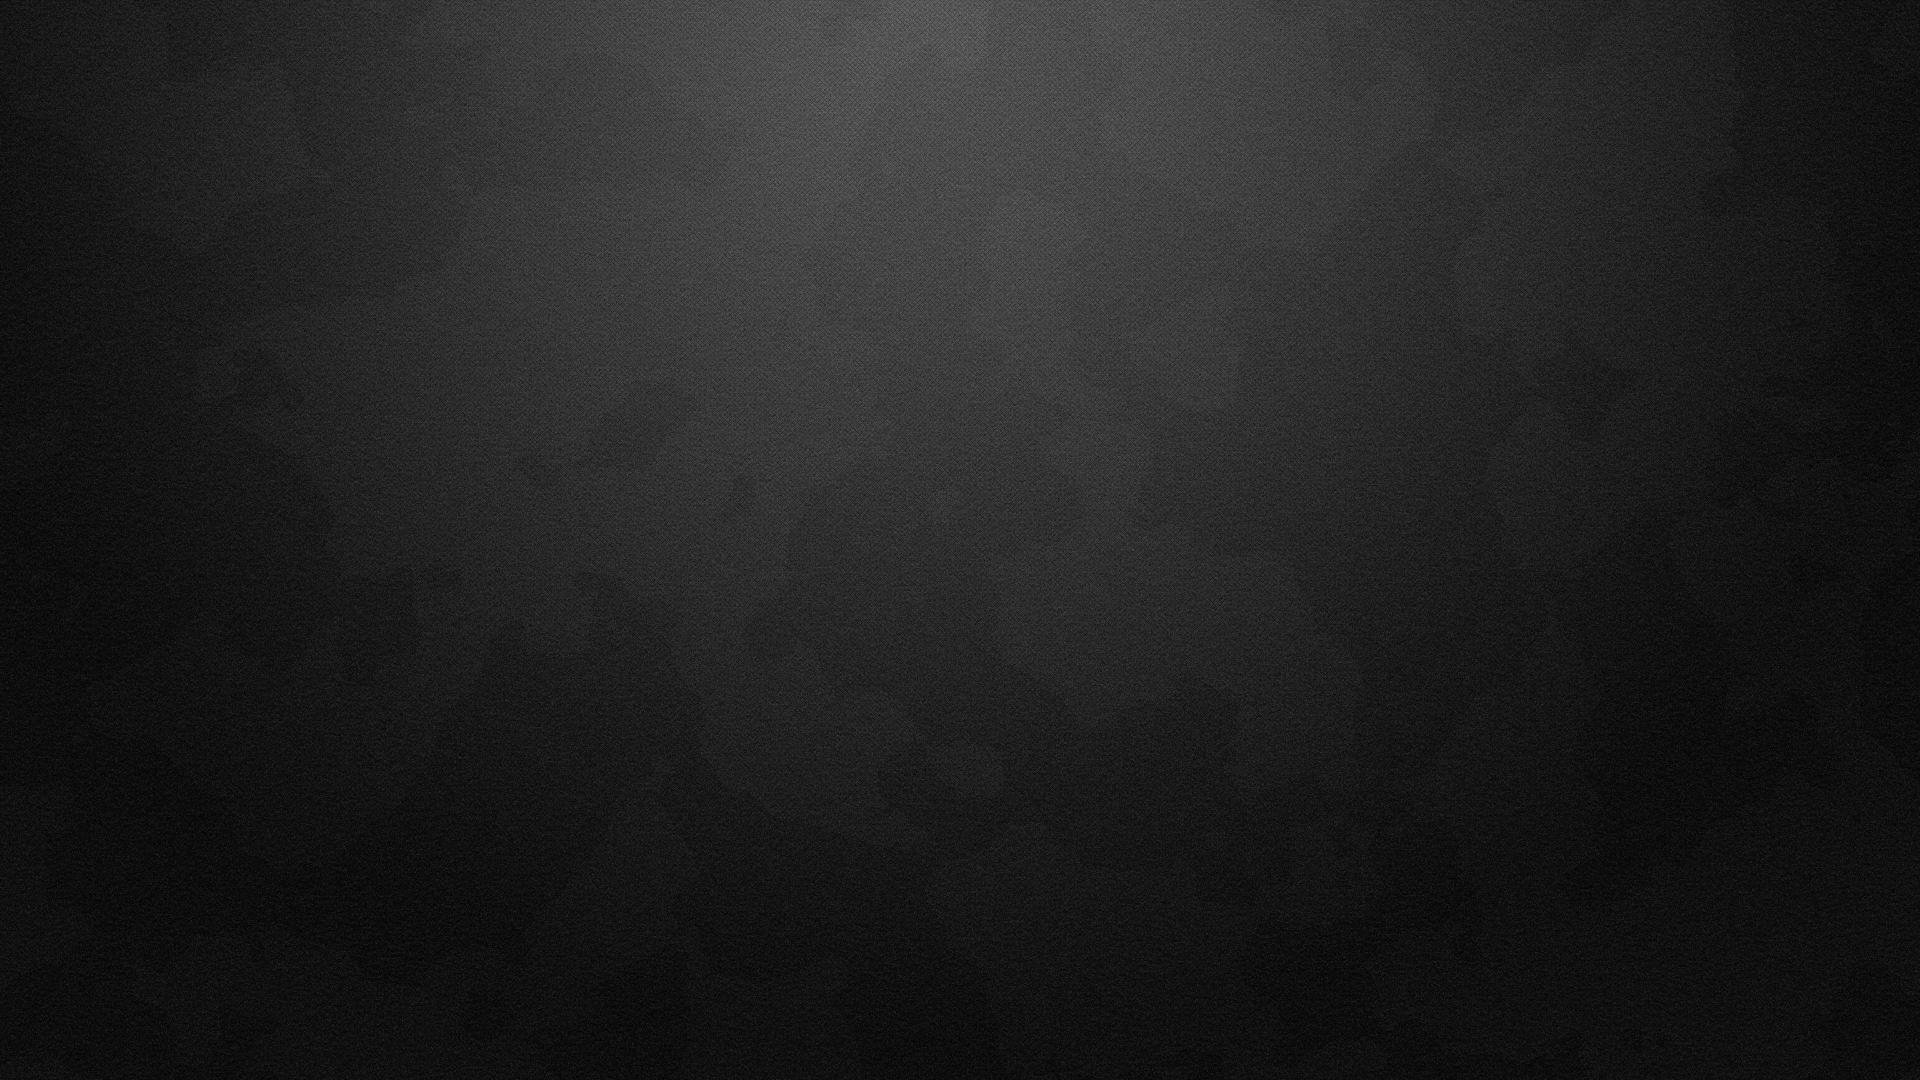 Grey Textured Fade Wallpaper for Phones and Tablets 1920x1080